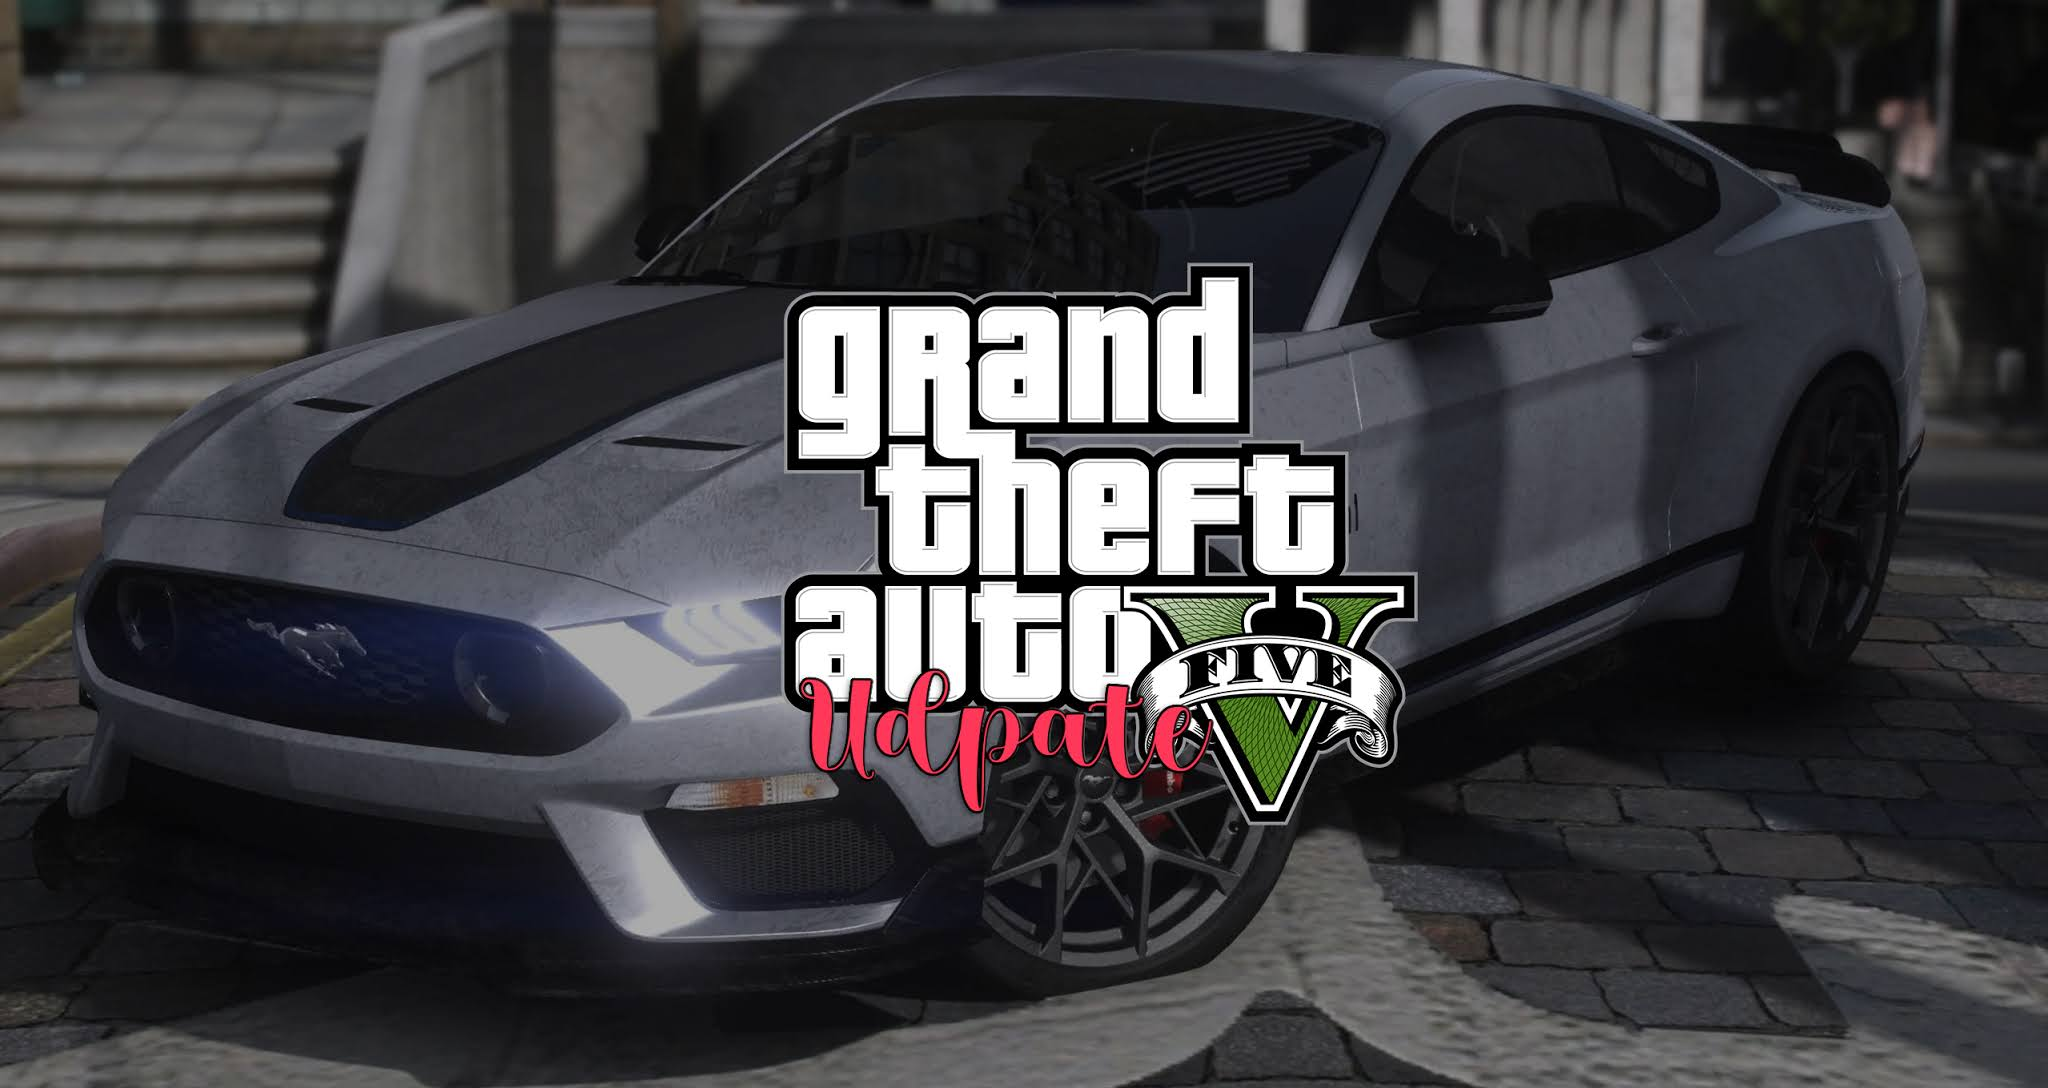 download gta 5 update 1.54 download gta v update 1.54 download gta 5 patch download gta 5 3dm crack update gta 5 update 1.49 download download gta 5 android download gta 5 apk download gta 5 apk and obb download gta 5 3dm crack and update download gta 5 apk for pc download gta 5 apk file for android download gta 5 apkpure download gta 5 android no verification download gta 5 beta android download gta 5 by htg download gta 5 bluestacks download gta 5 by htg.rar download gta 5 by softonic download gta 5 by high school technical gamer download gta 5 beta apk data download gta 5 beta version pc for free download gta 5 compressed download gta 5.com download gta 5 cheats download gta 5 crack launcher download gta 5 compressed for pc 100 working download gta 5 crack 2020 download gta 5 cheats for pc download gta 5 data download gta 5 drive google download gta 5 dlc download gta 5 data apk android download gta 5 doraemon download gta 5 direct download gta 5 digital download gta 5 update 1.41 download gta 5 update 1.50 download gta 5 update 1.60 ps3 download gta 5 update patch download gta 5 update 1.44 download gta 5 update file download gta 5 epic games download gta 5 exe download gta 5 emulator download gta 5 emulator android download gta 5 epsxe download gta 5.exe on google drive download gta 5 emulator ps4 android download gta 5 emulator ppsspp download gta 5 for android download gta 5 full game for android without verification download gta 5 for ppsspp download gta 5 for android full apk free no survey download gta 5 for android free download gta 5 for pc highly compressed download gta 5 free hiapphere download gta 5 for android full apk free no verification download gta 5 game for android download gta 5 google drive(single link) download gta 5 game for pc highly compressed download gta 5 gameplay download gta 5 game for psp download gta 5 game offline download gta 5 highly compressed for pc 100 working download gta 5 highly compressed download gta 5 highly compressed 